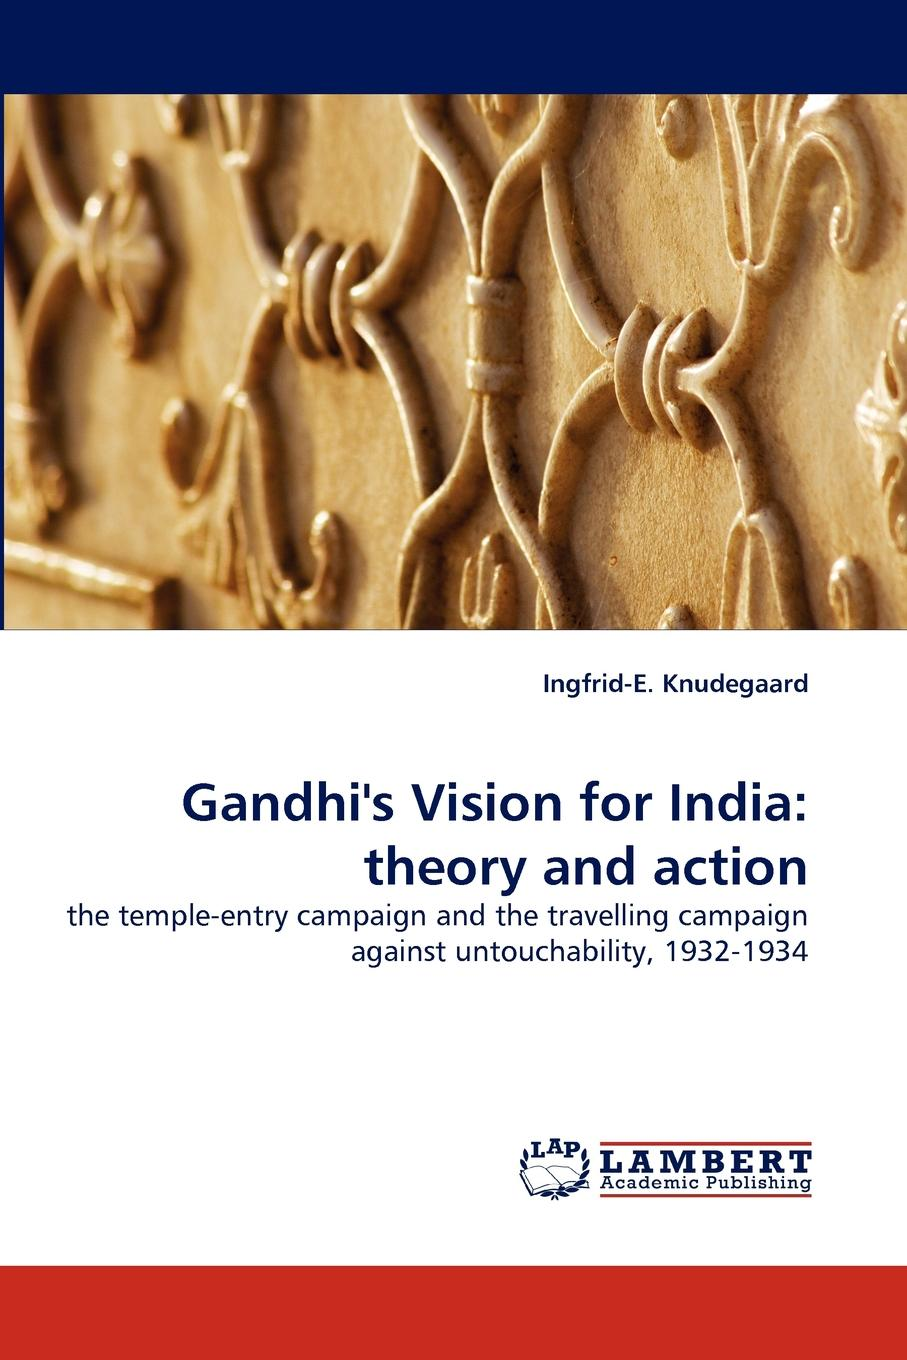 Ingfrid-E Knudegaard Gandhi.s Vision for India. Theory and Action gandhi mahatma third class in indian railways